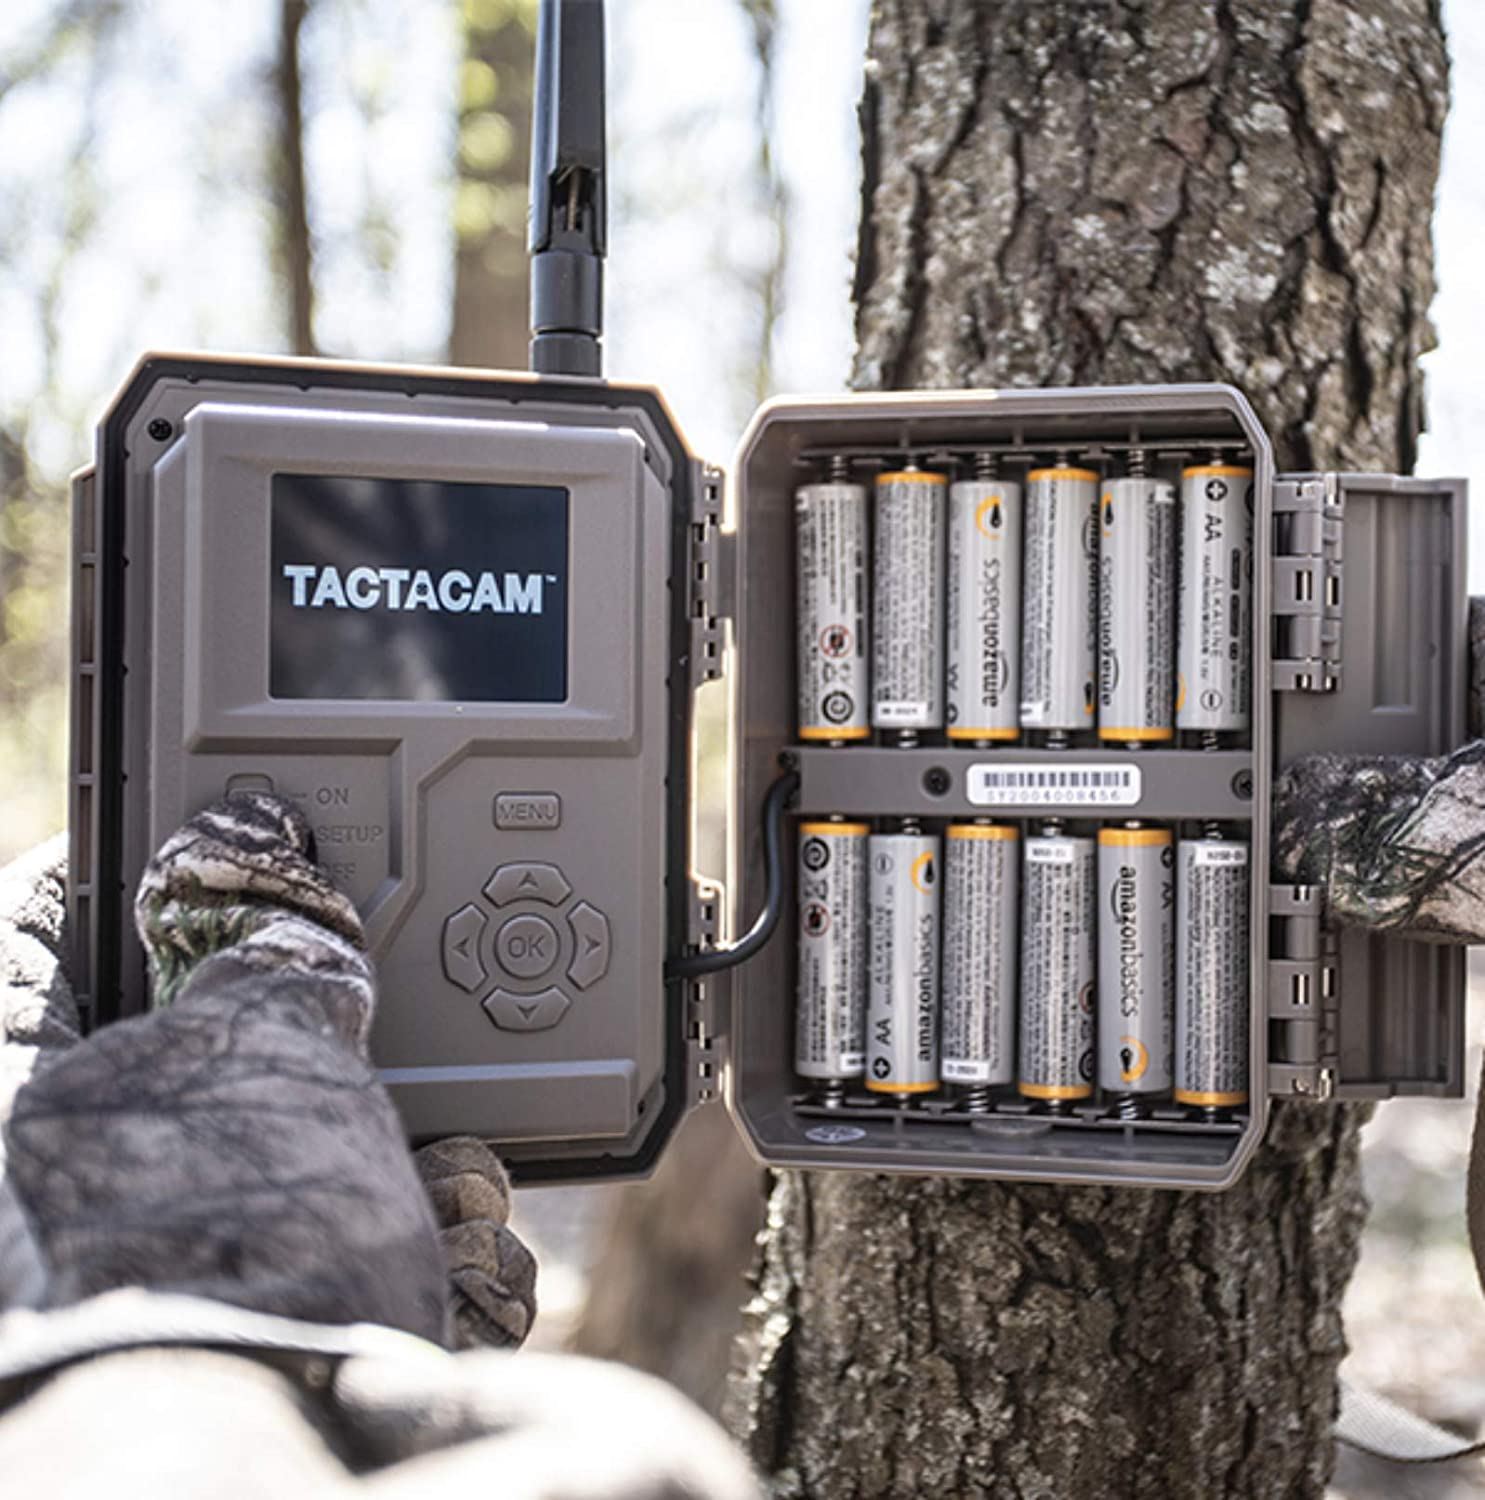 Verizon Free 2 Day Shipping New Tactacam Reveal 24MP Cellular Trail Camera